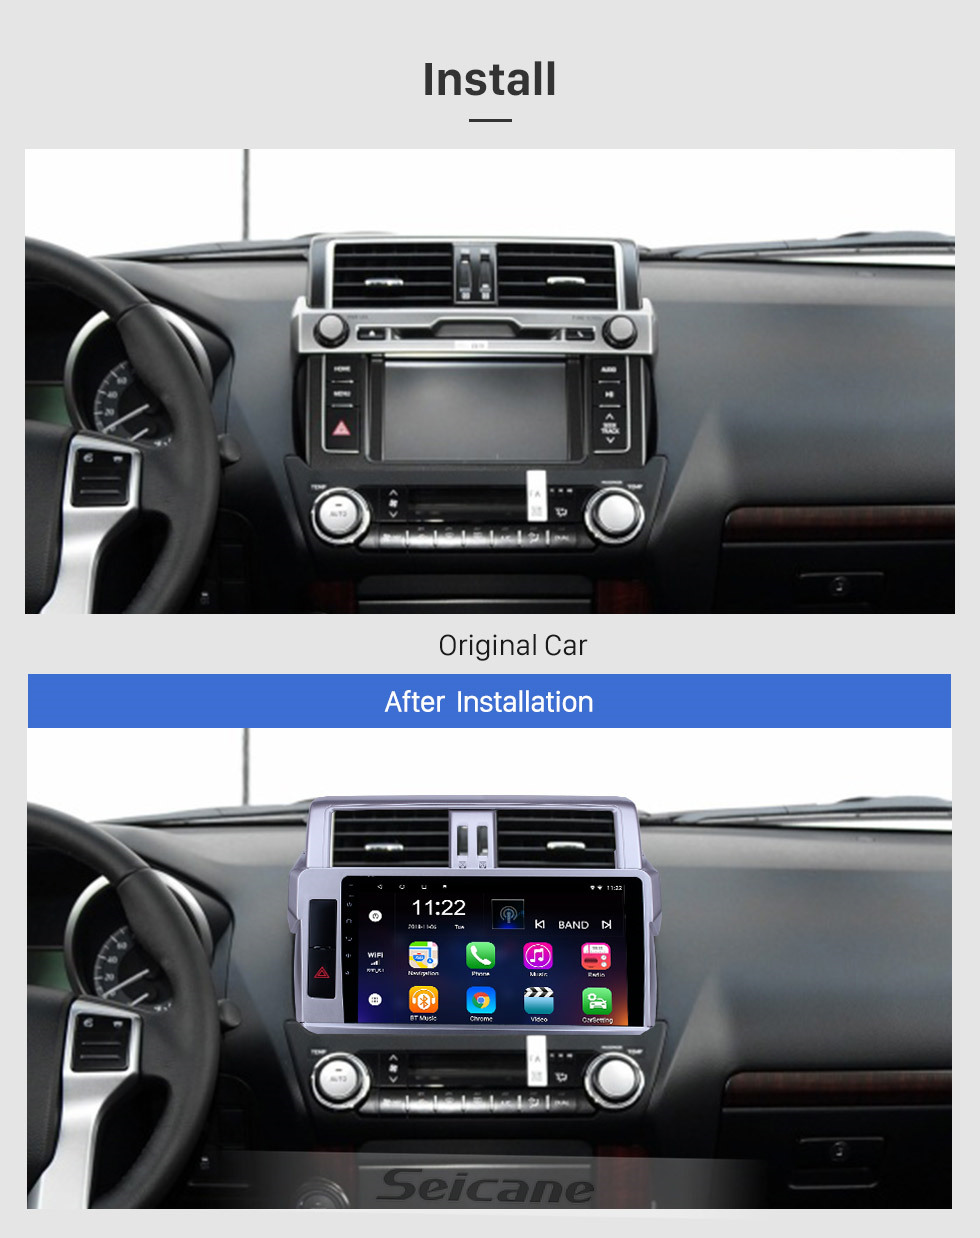 Seicane 10.1 inch GPS Navigation Radio Android 10.0 for 2014 Toyota Pardo With HD Touchscreen Bluetooth support Carplay Backup camera